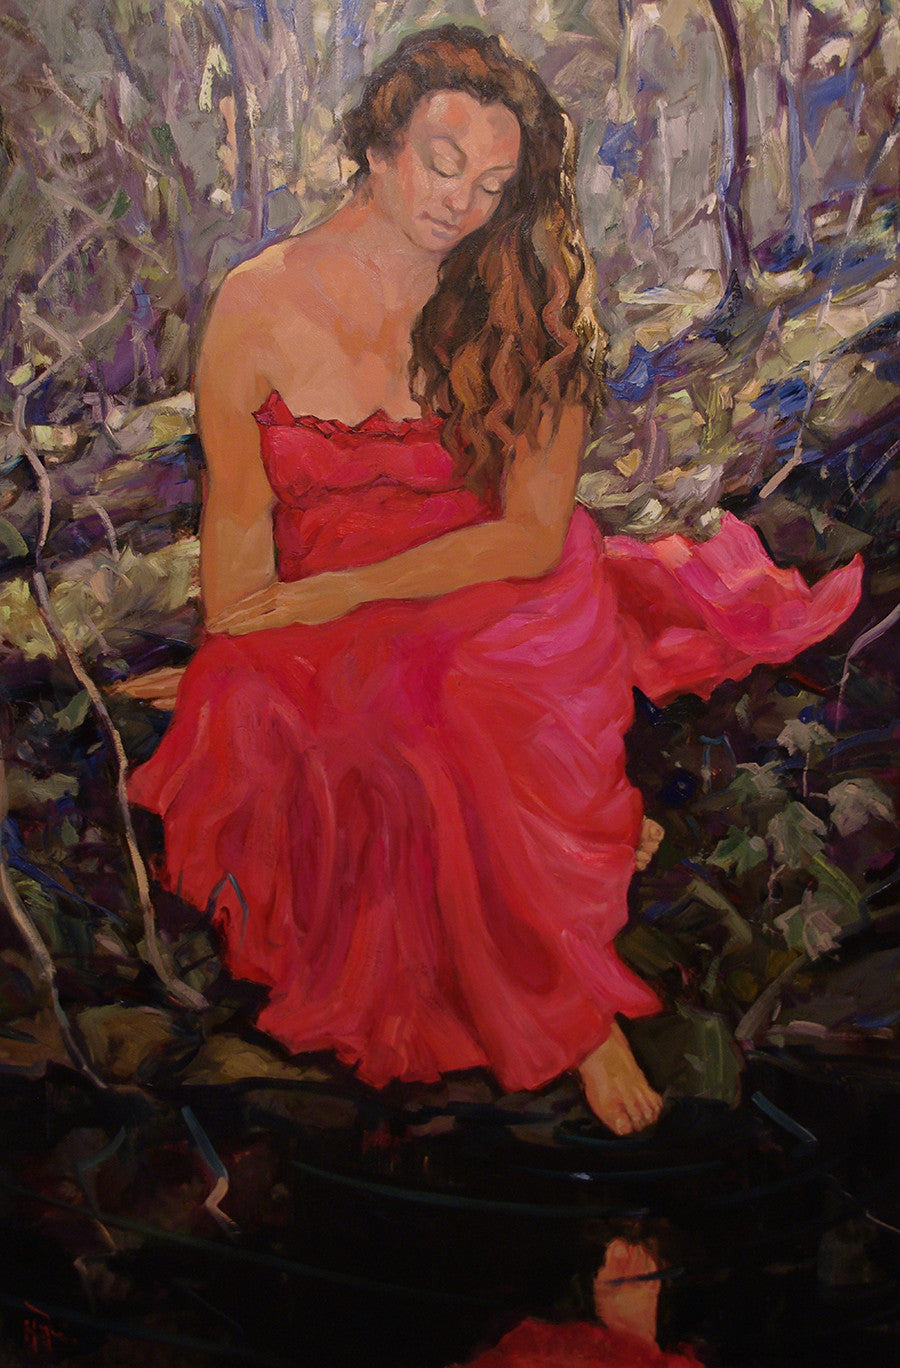 Bush Mermaid - Halin de Repentigny - painting